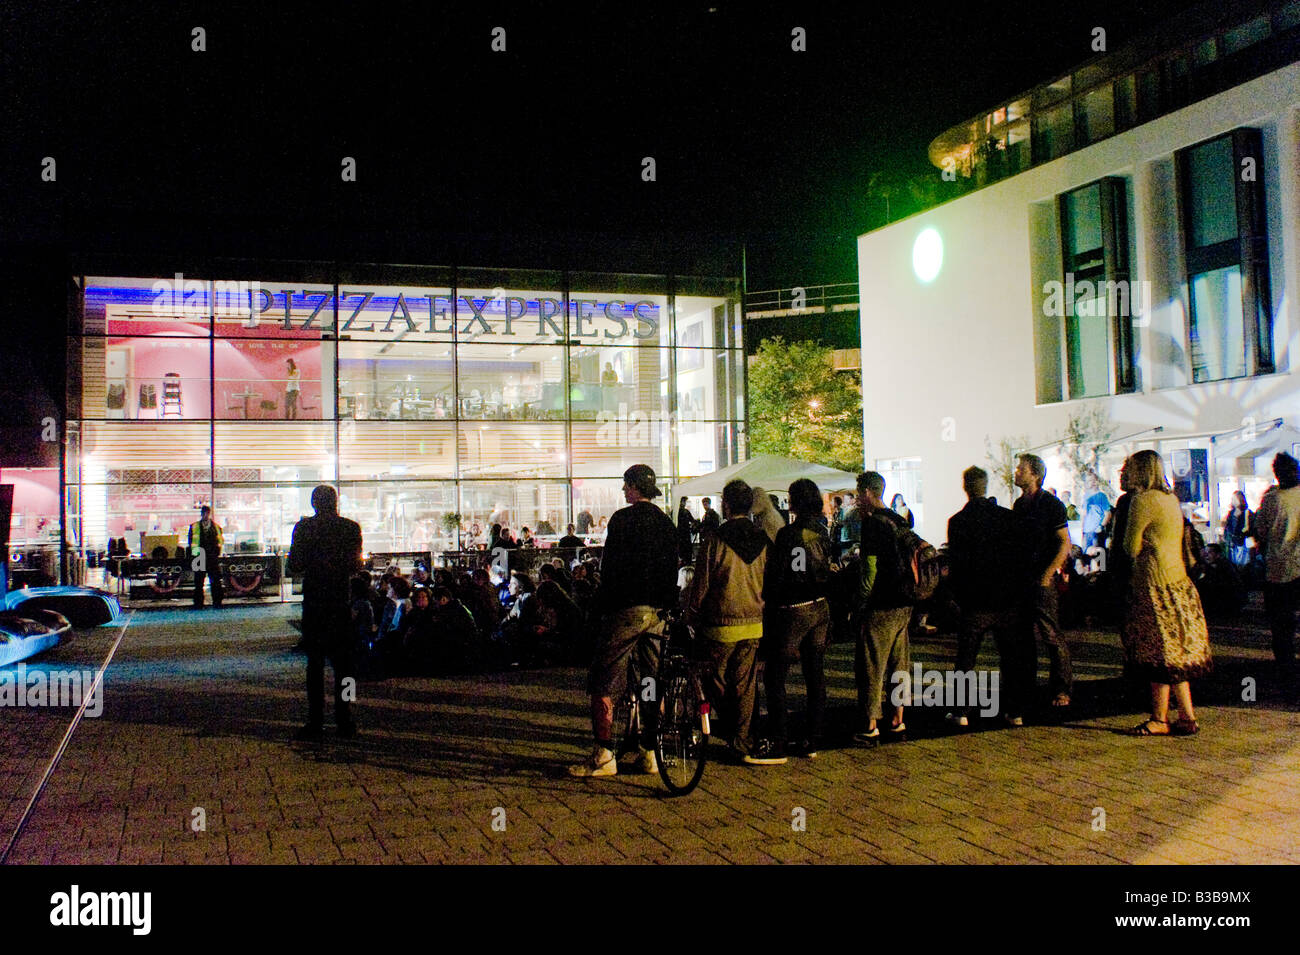 Crowds gather in Brighton Jubilee square for a light show projected on buildings looking towards My hotel and Pizza Stock Photo